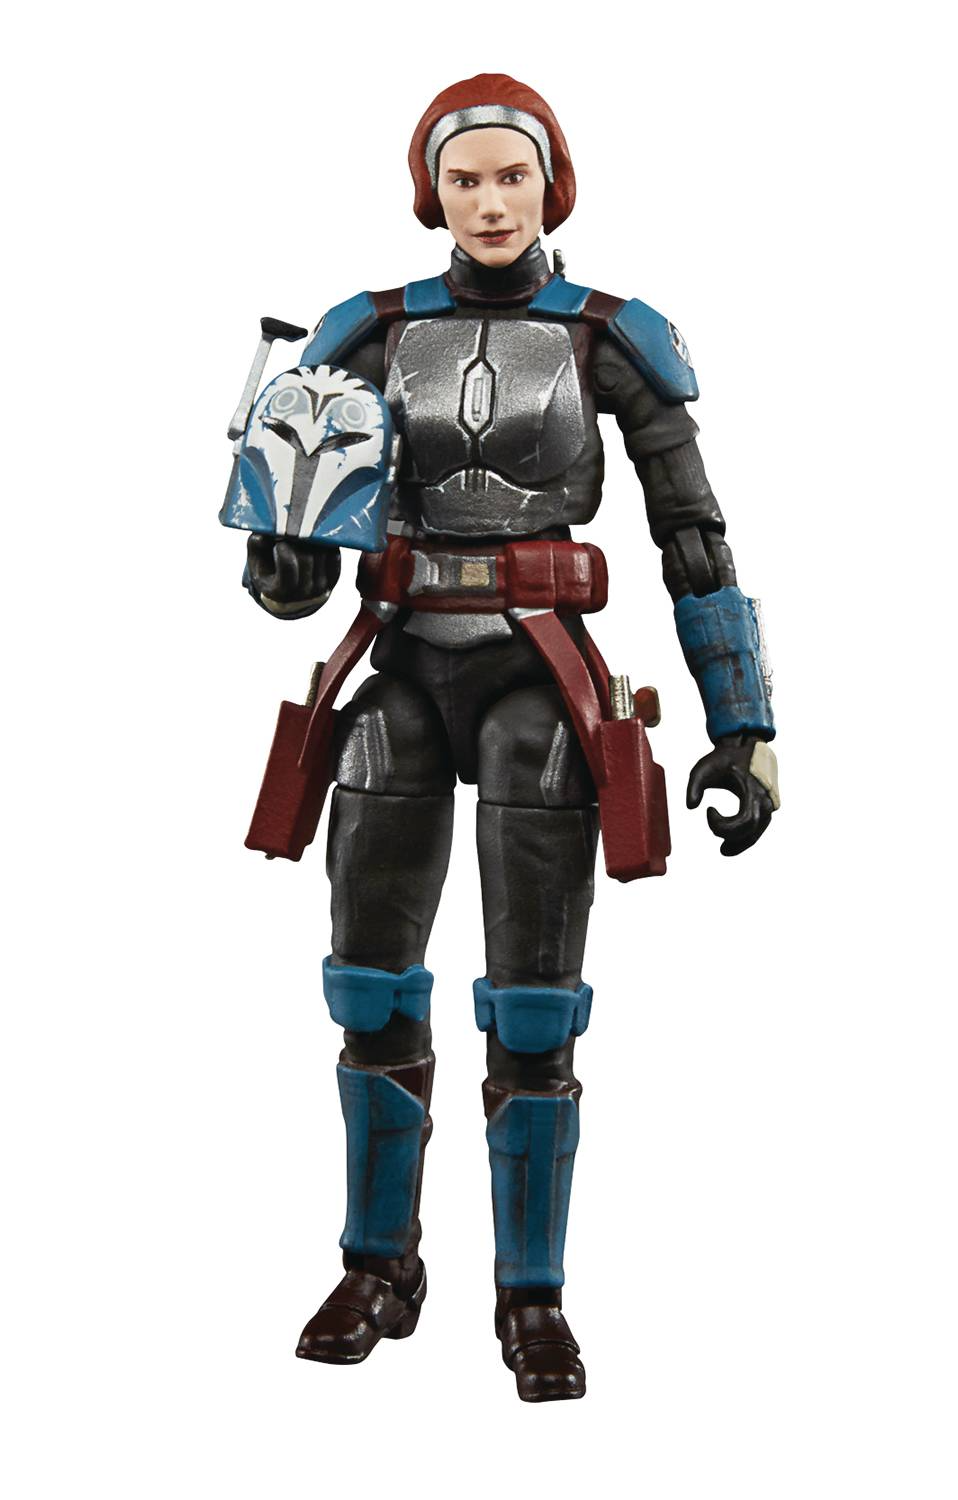 Star Wars - The Vintage Collection - The Mandalorian - Bo-Katan 3.75inch Action Figure